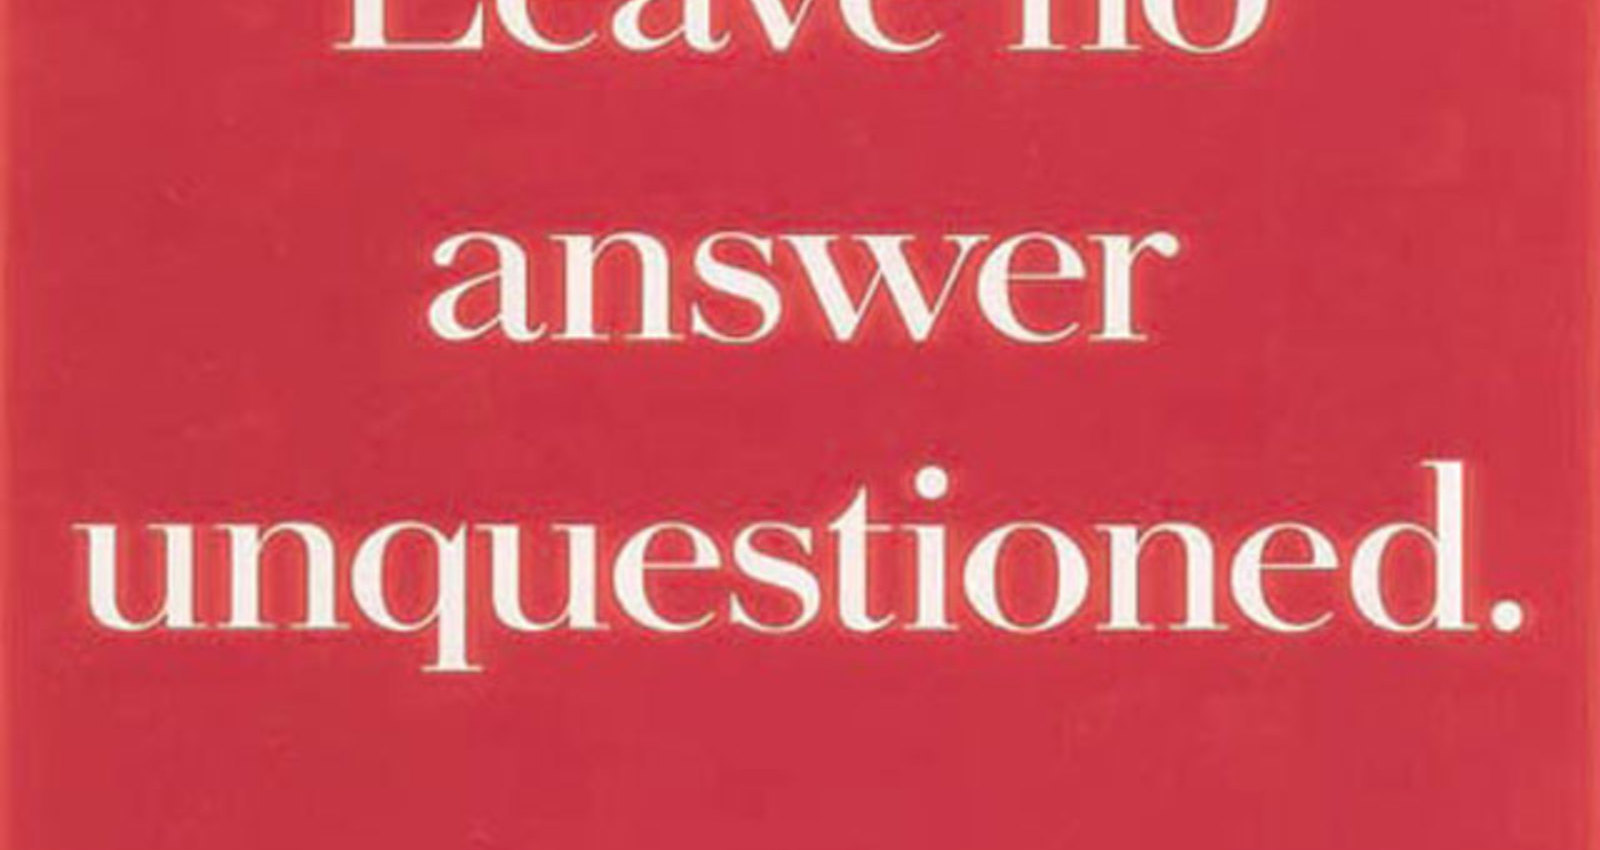 Leave No Answer Unquestioned